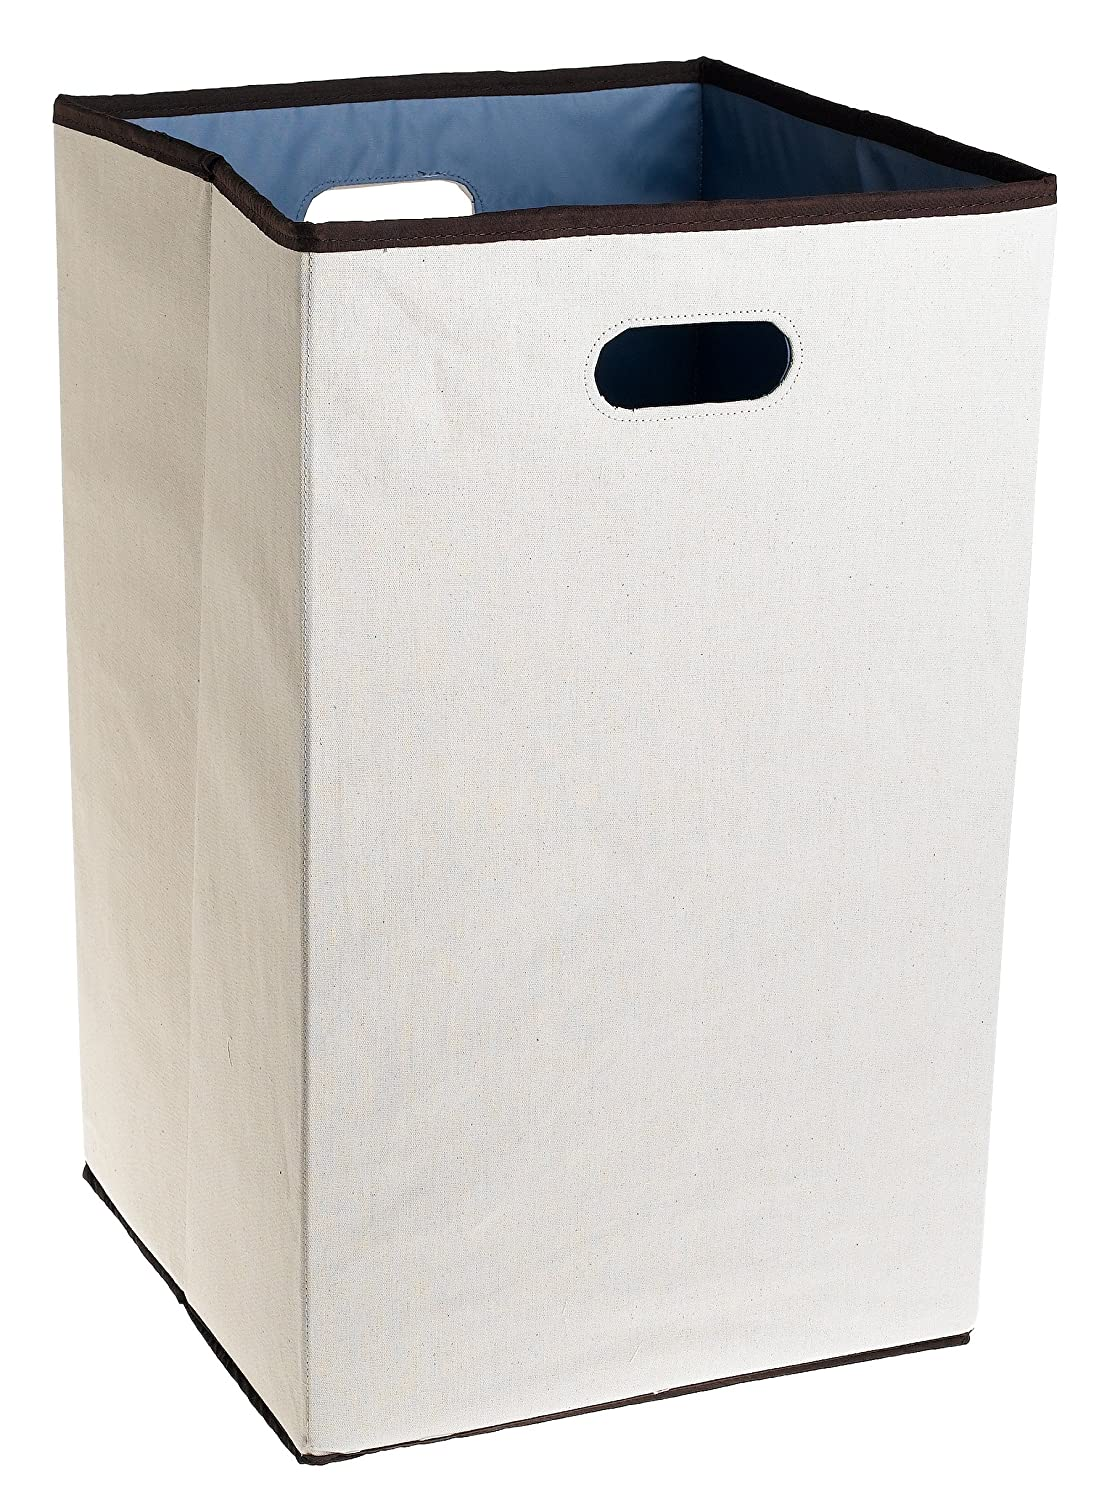 Rubbermaid 4D06 Configurations 23-Inch Foldable Laundry Hamper